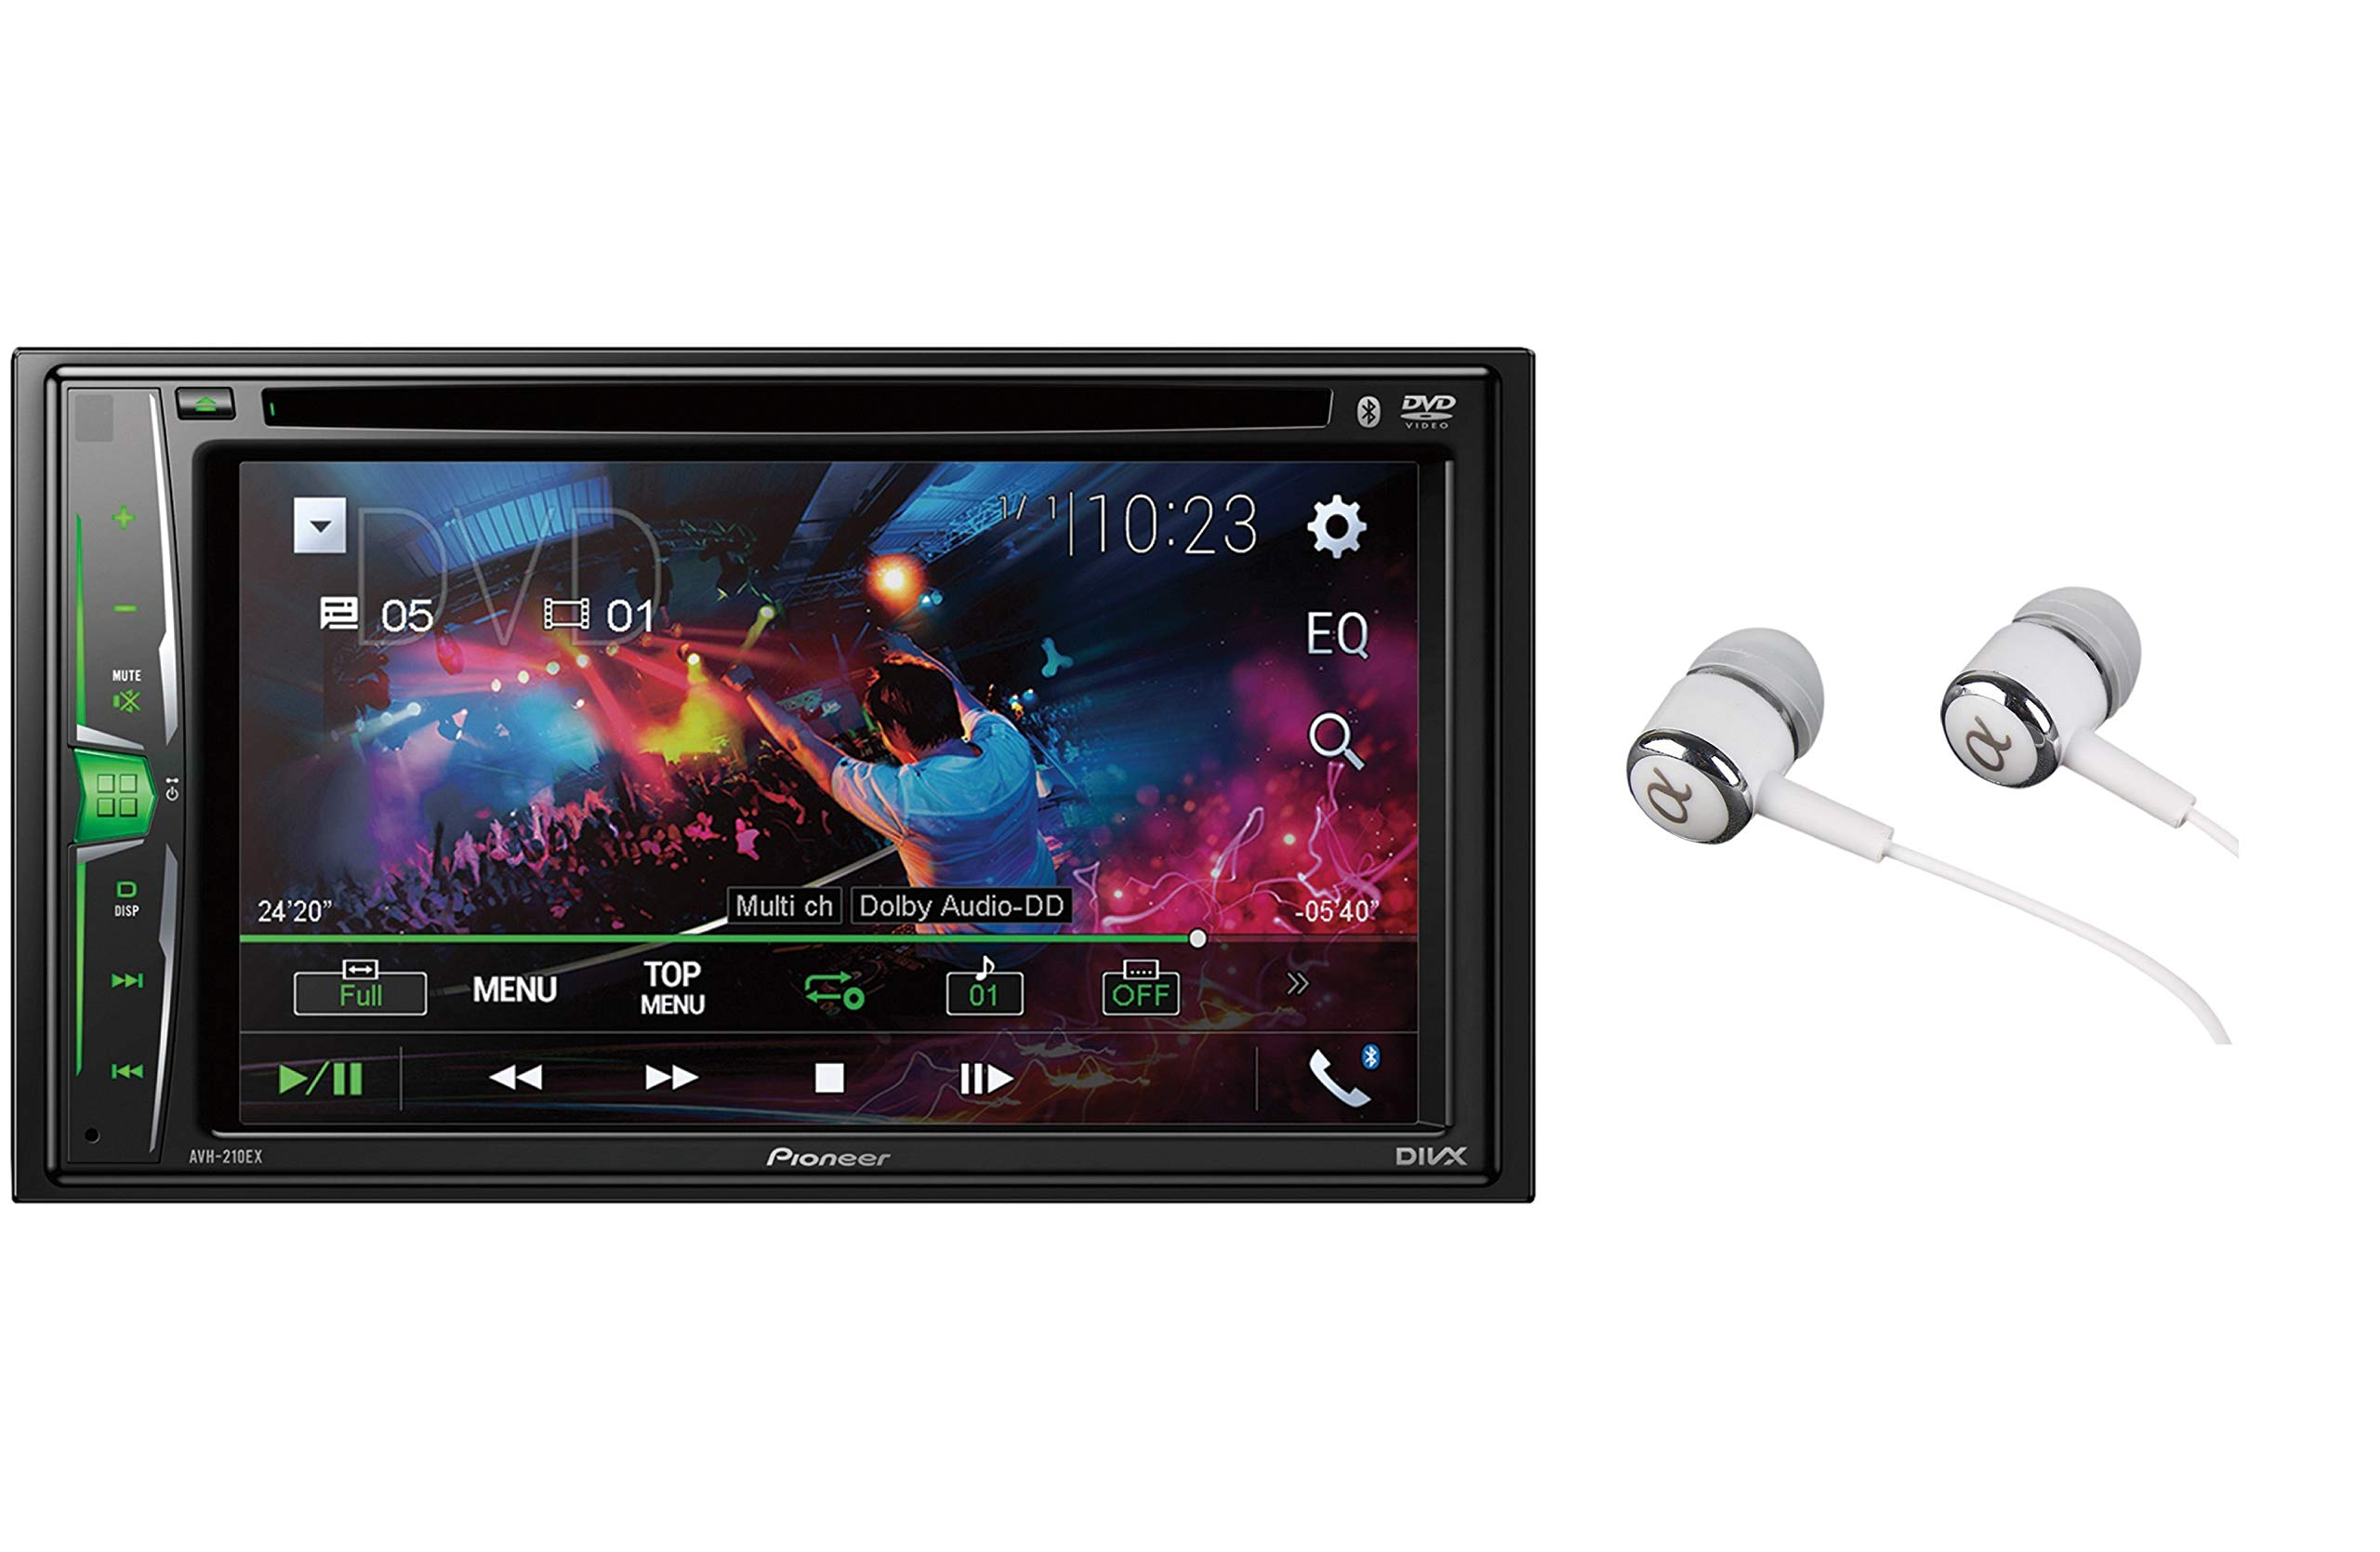 Pioneer AVH-210EX Double DIN Bluetooth In-Dash DVD/CD AM/FM Front USB Digital Media Car Stereo Receiver 6.2'' WVGA Touchscreen Display, Apple iPhone and Android Music Support by PIONEER